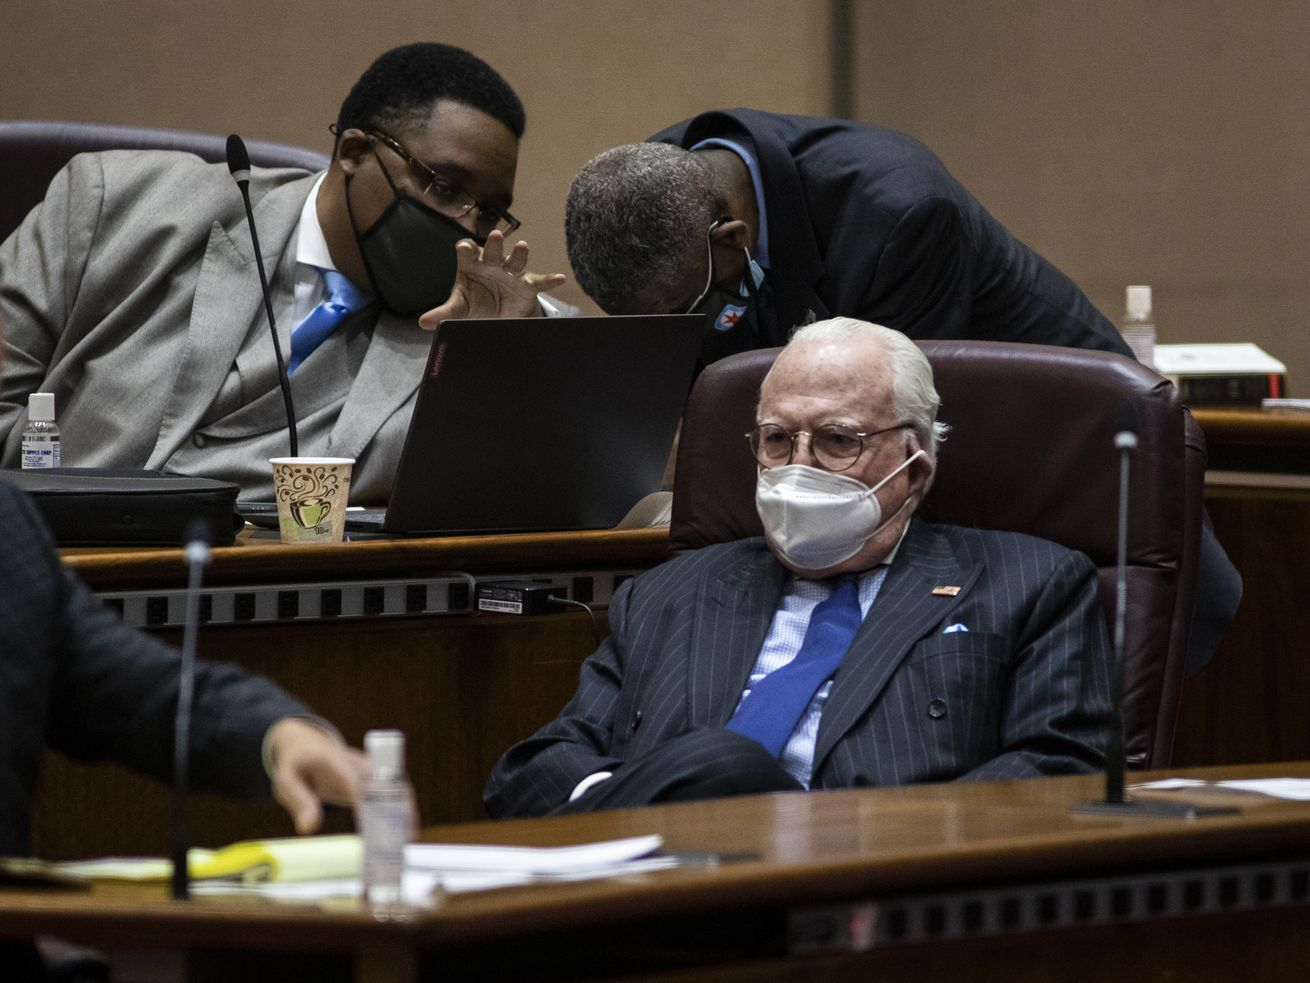 Ald. Ed Burke (14th) attends the City Council meeting Wednesday morning, the first in-person council meeting since the start of the coronavirus pandemic more than a year ago.